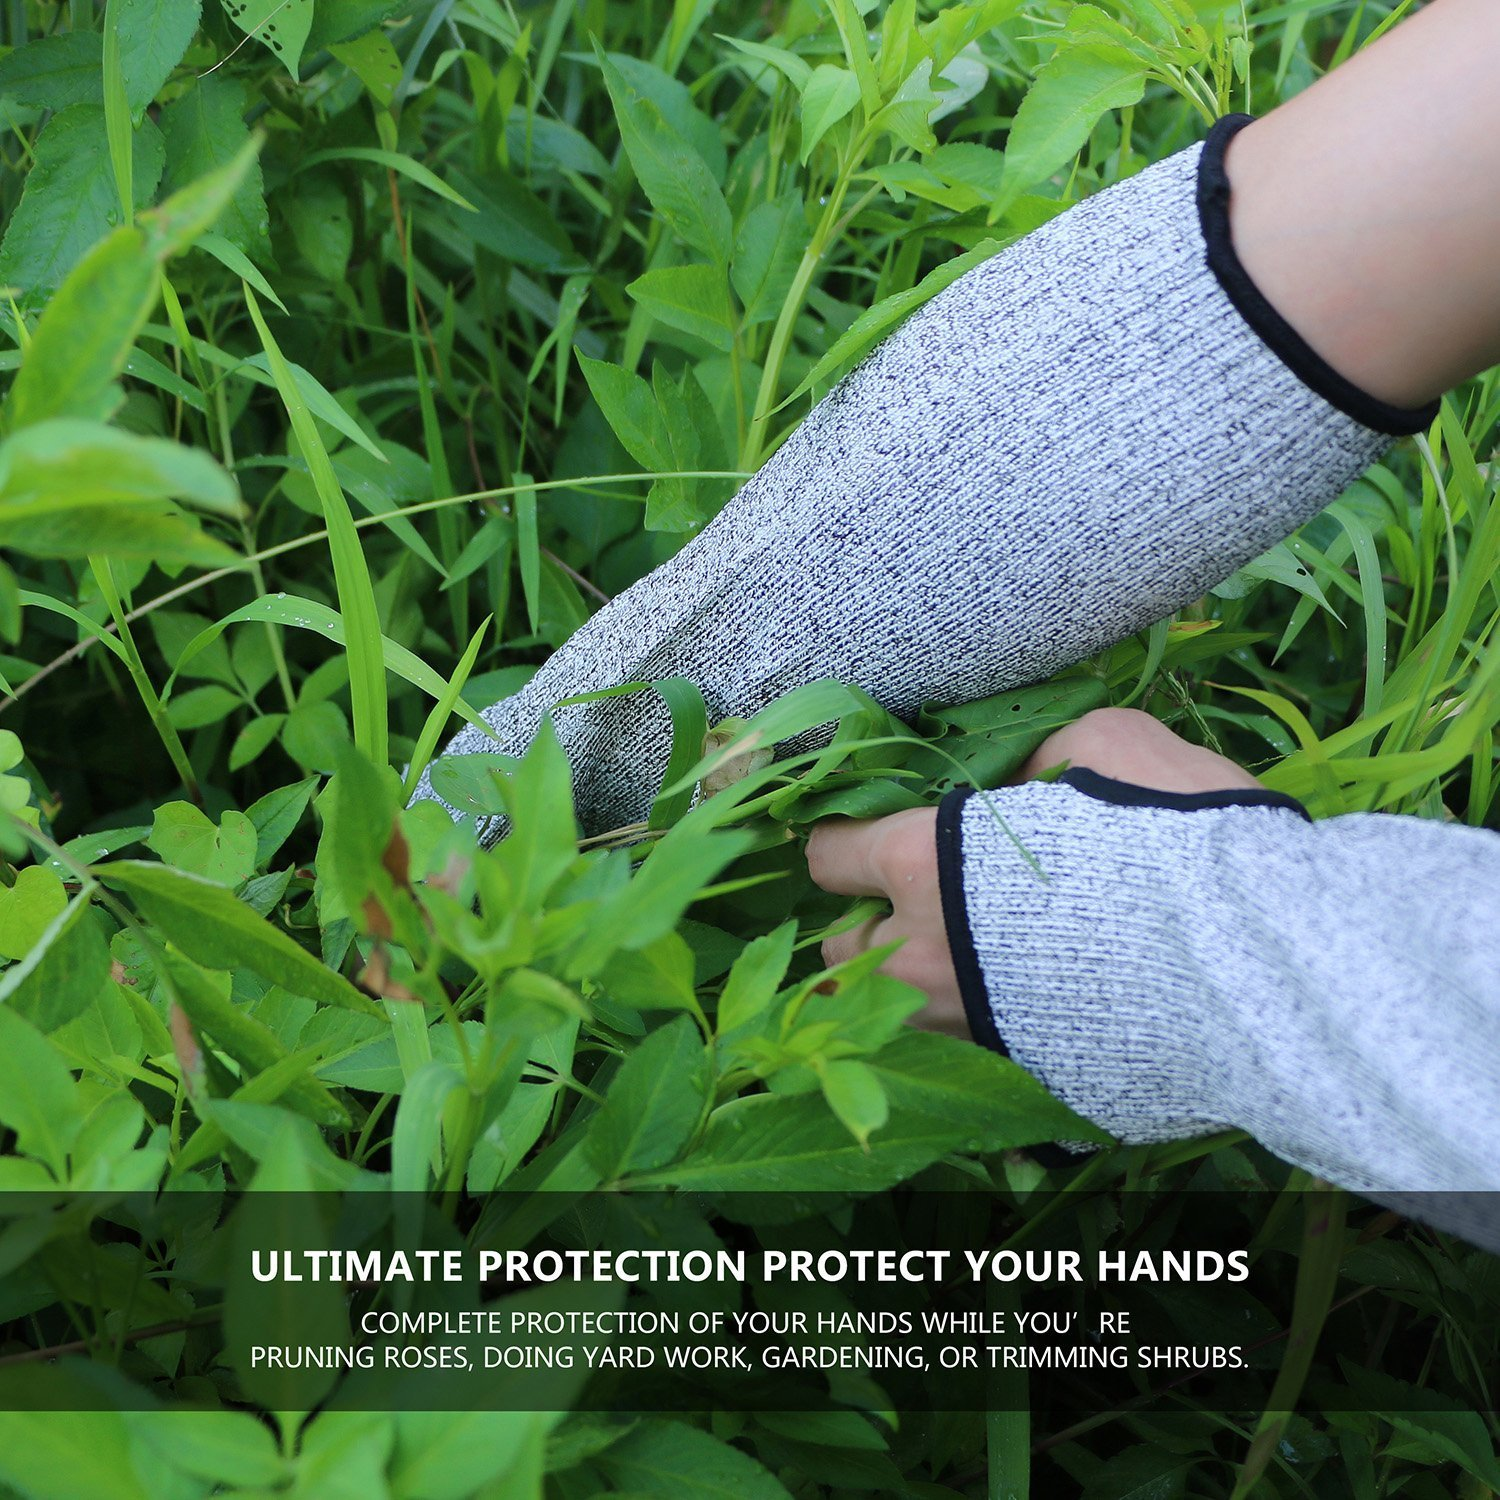 Cut Resistant Sleeves with Thumb Hole, Level 5 Protection, Slash Resistant Safety Protective Arm Sleeves, 14 inch long, Large (Arm width 4-8 inch) sold by Pair(2 Pieces) by G & F Products (Image #3)